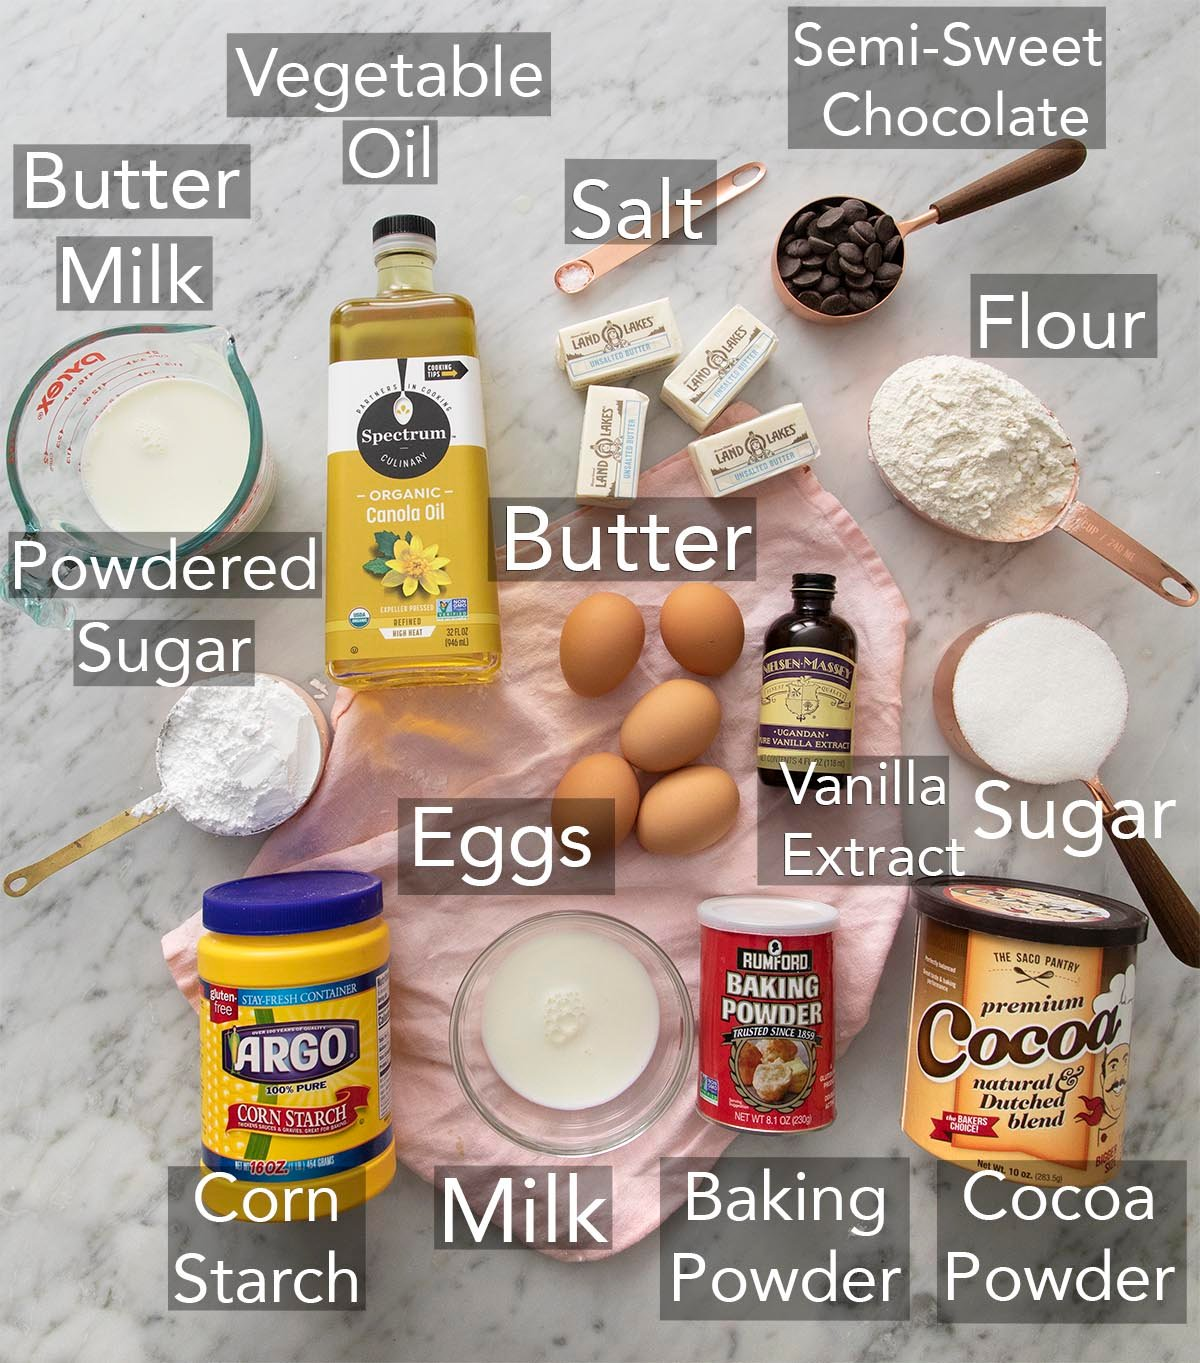 Ingredients for making a Yellow Cake on a counter.